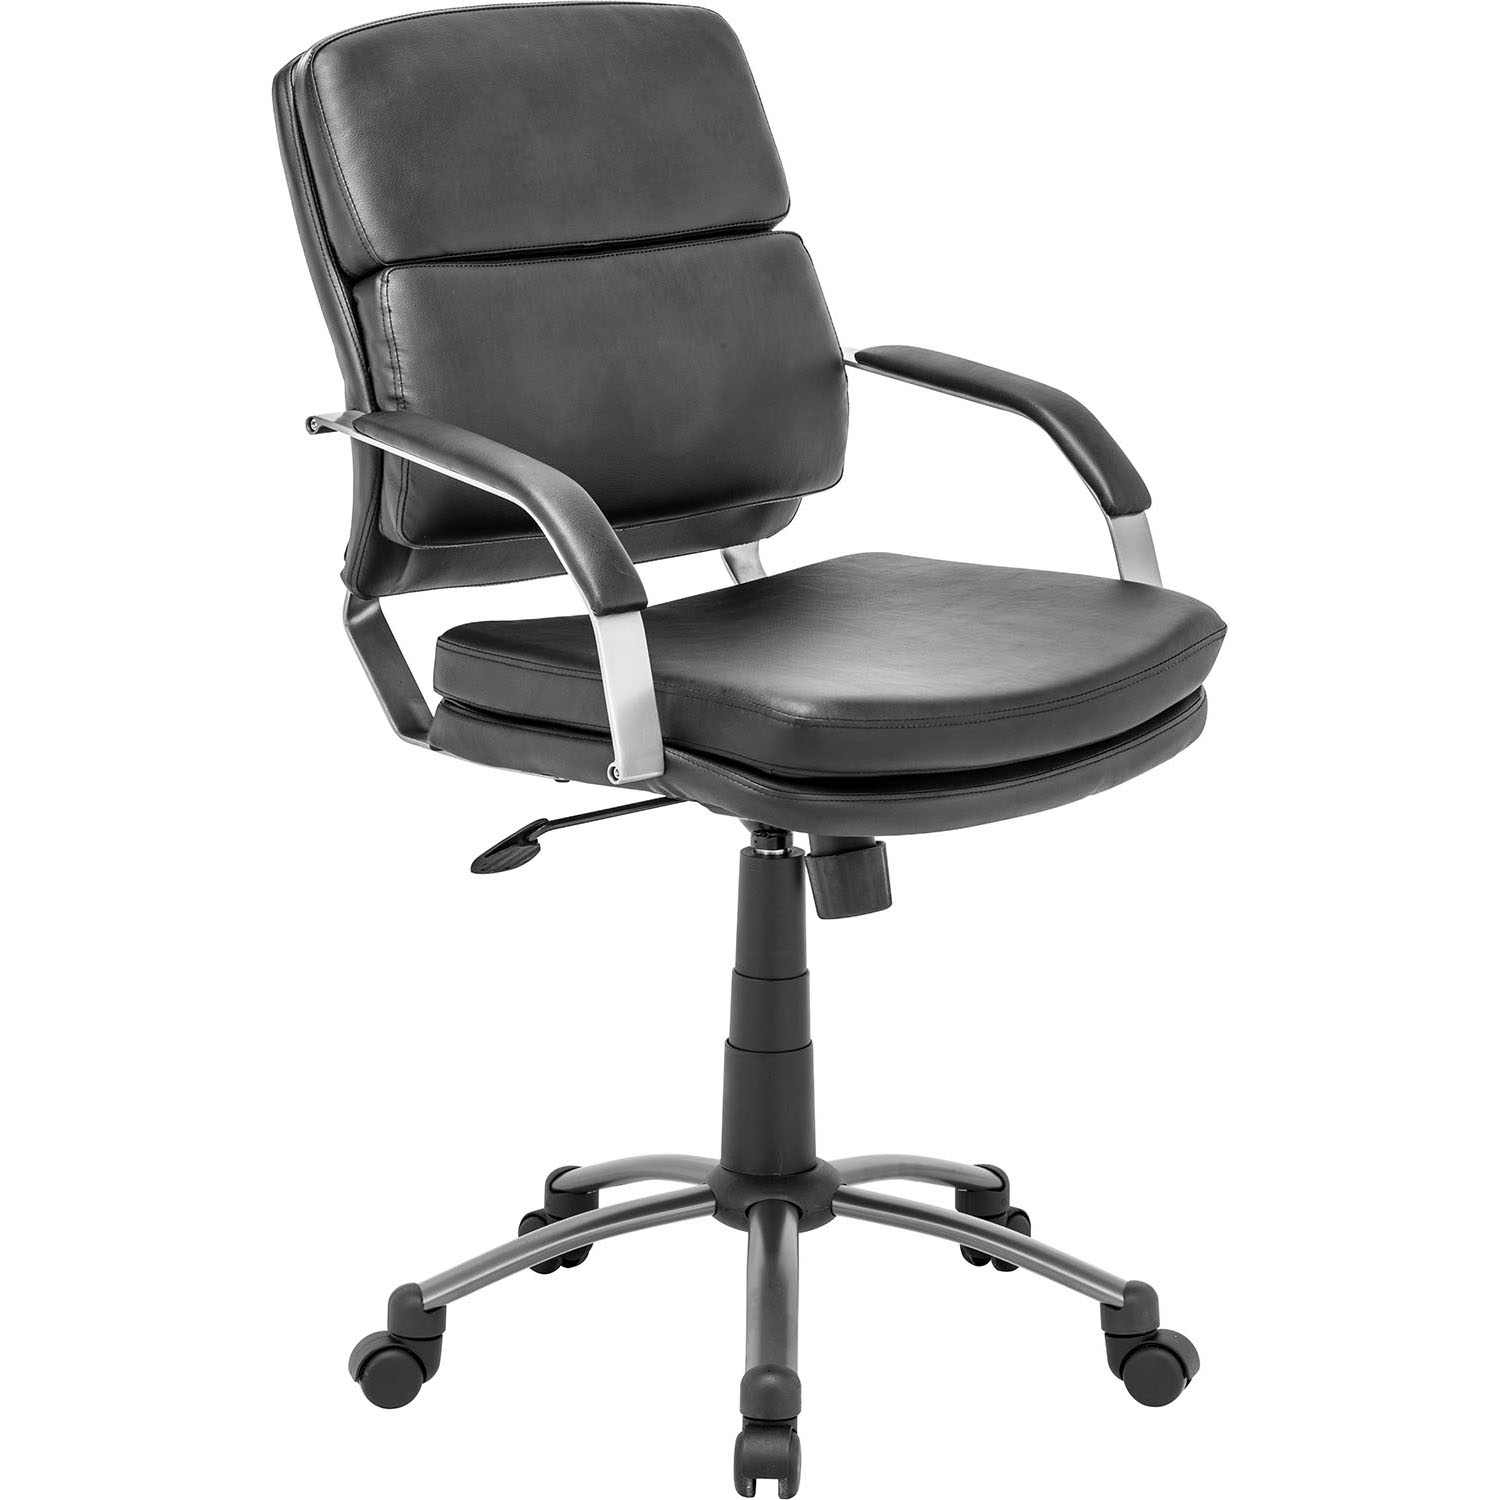 Director Relax Adjustable Rolling Office Armchair 205328, 205329